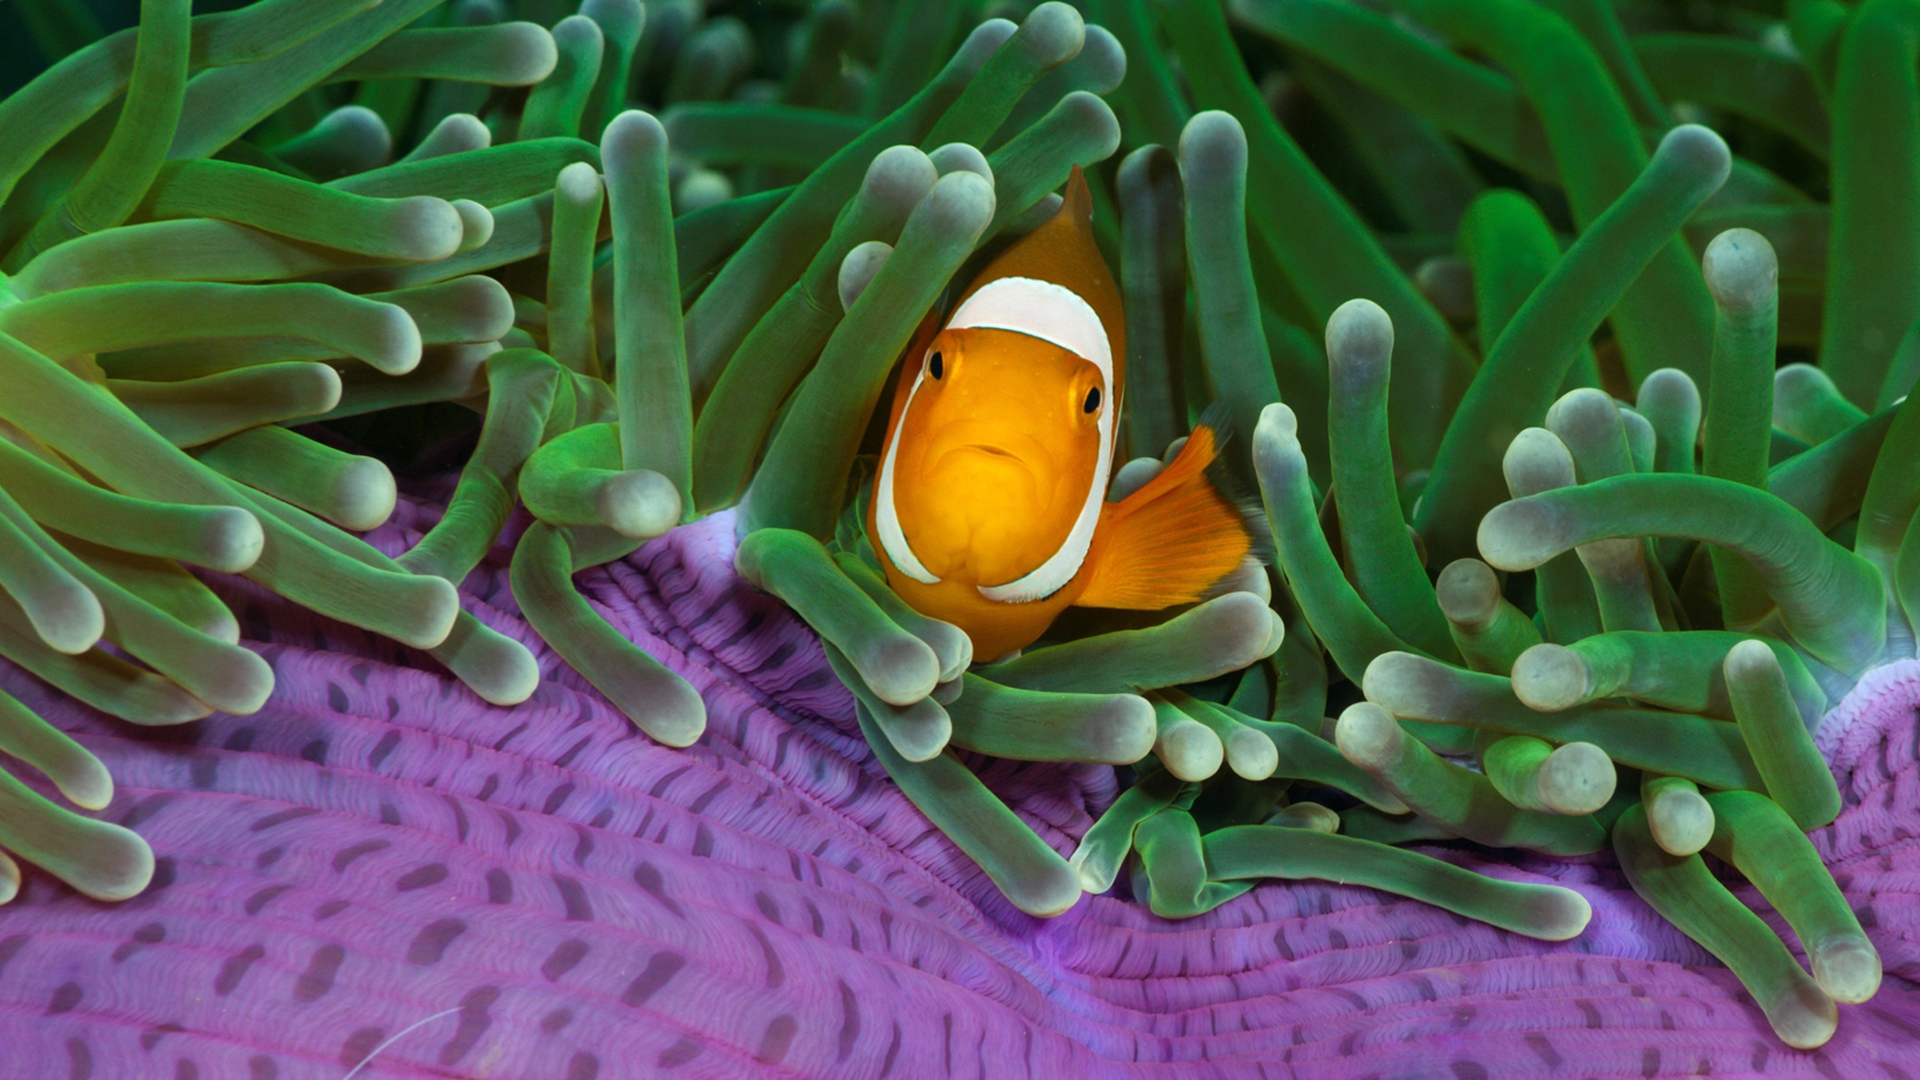 Hd Lavender Wallpaper Clown Fish Wallpapers Pixelstalk Net